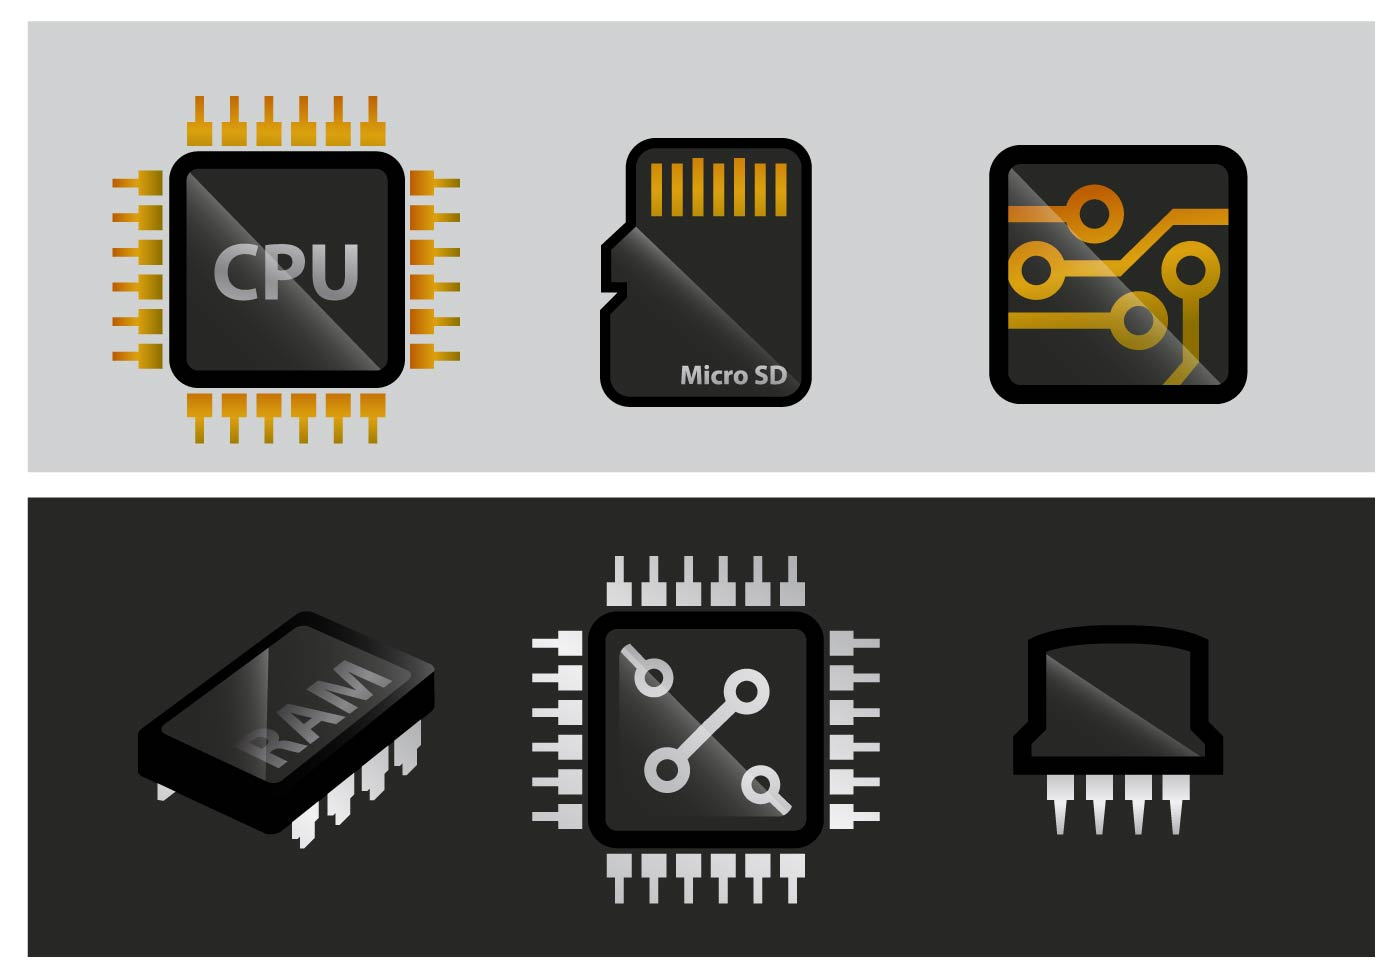 Types Of Ram >> Microchip Vector - Download Free Vector Art, Stock Graphics & Images